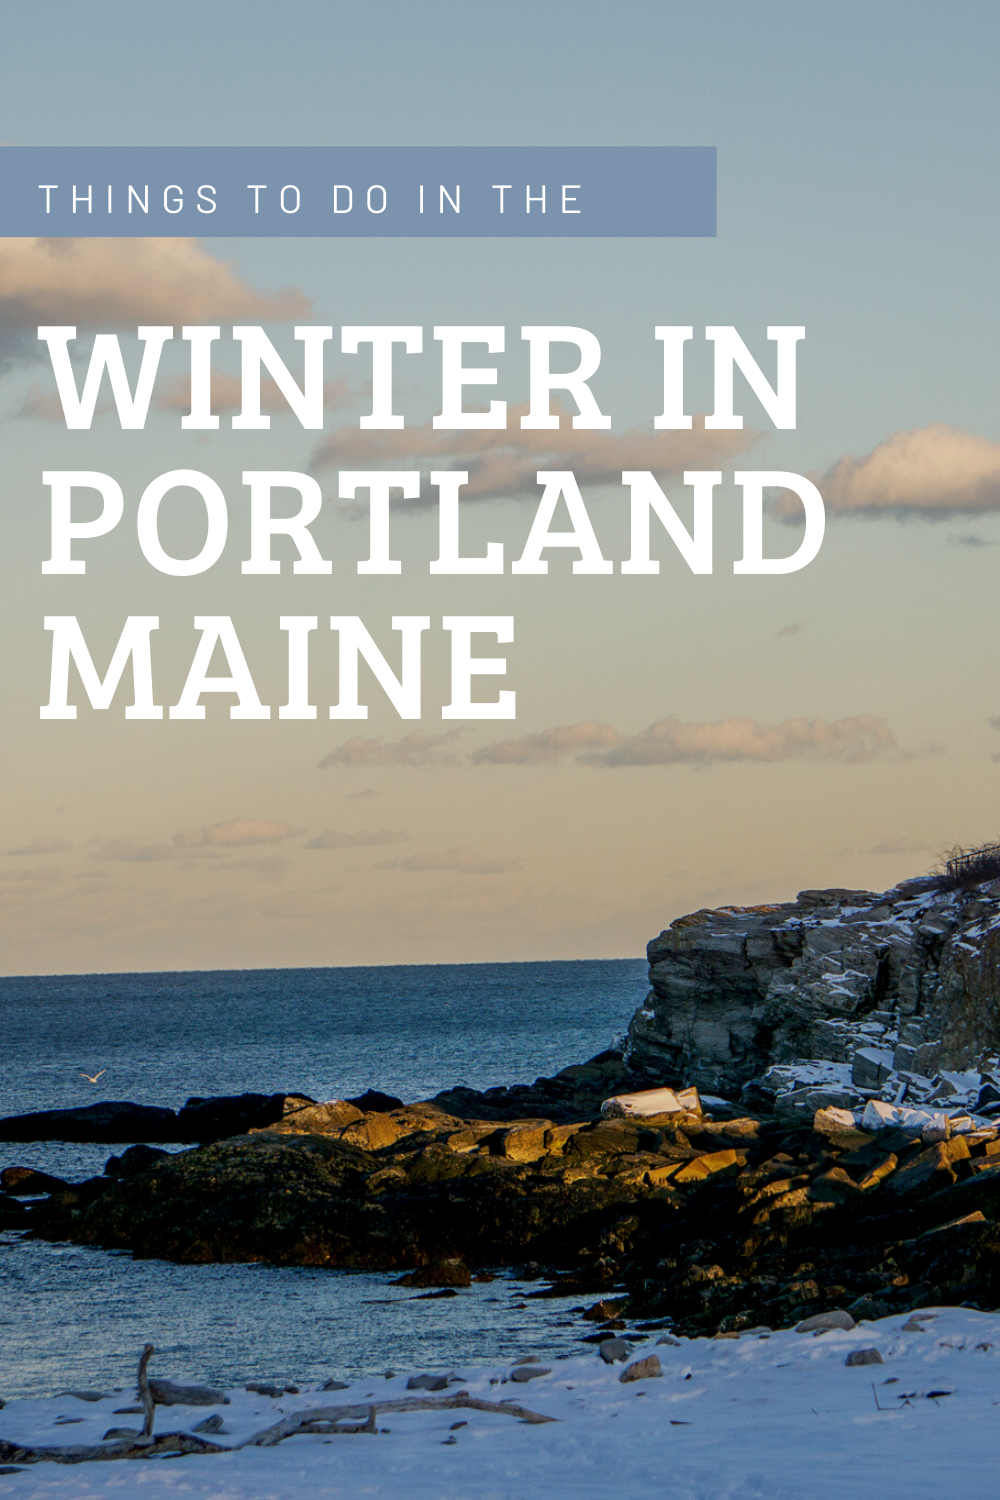 You may think that the only things to do in winter in Maine are to ski or snowboard. While those are some really great winter activities, Maine has lots more to offer in the winter months. Plus there are much less tourists! So don't let the snow and the cold keep you from planning a winter weekend in Portland, Maine!